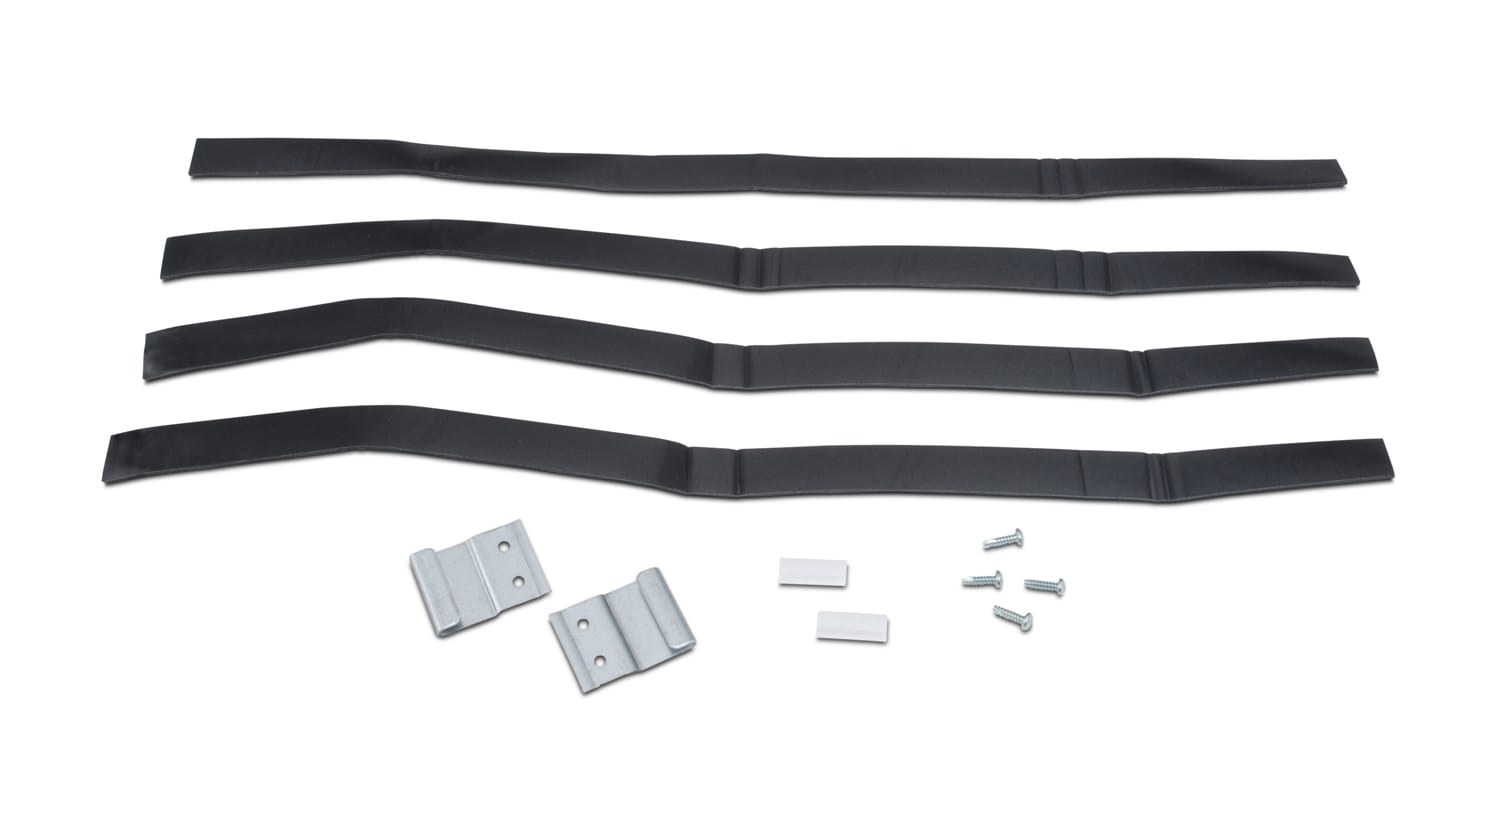 Washers and Dryers - Whirlpool Stacking Kit 8572546